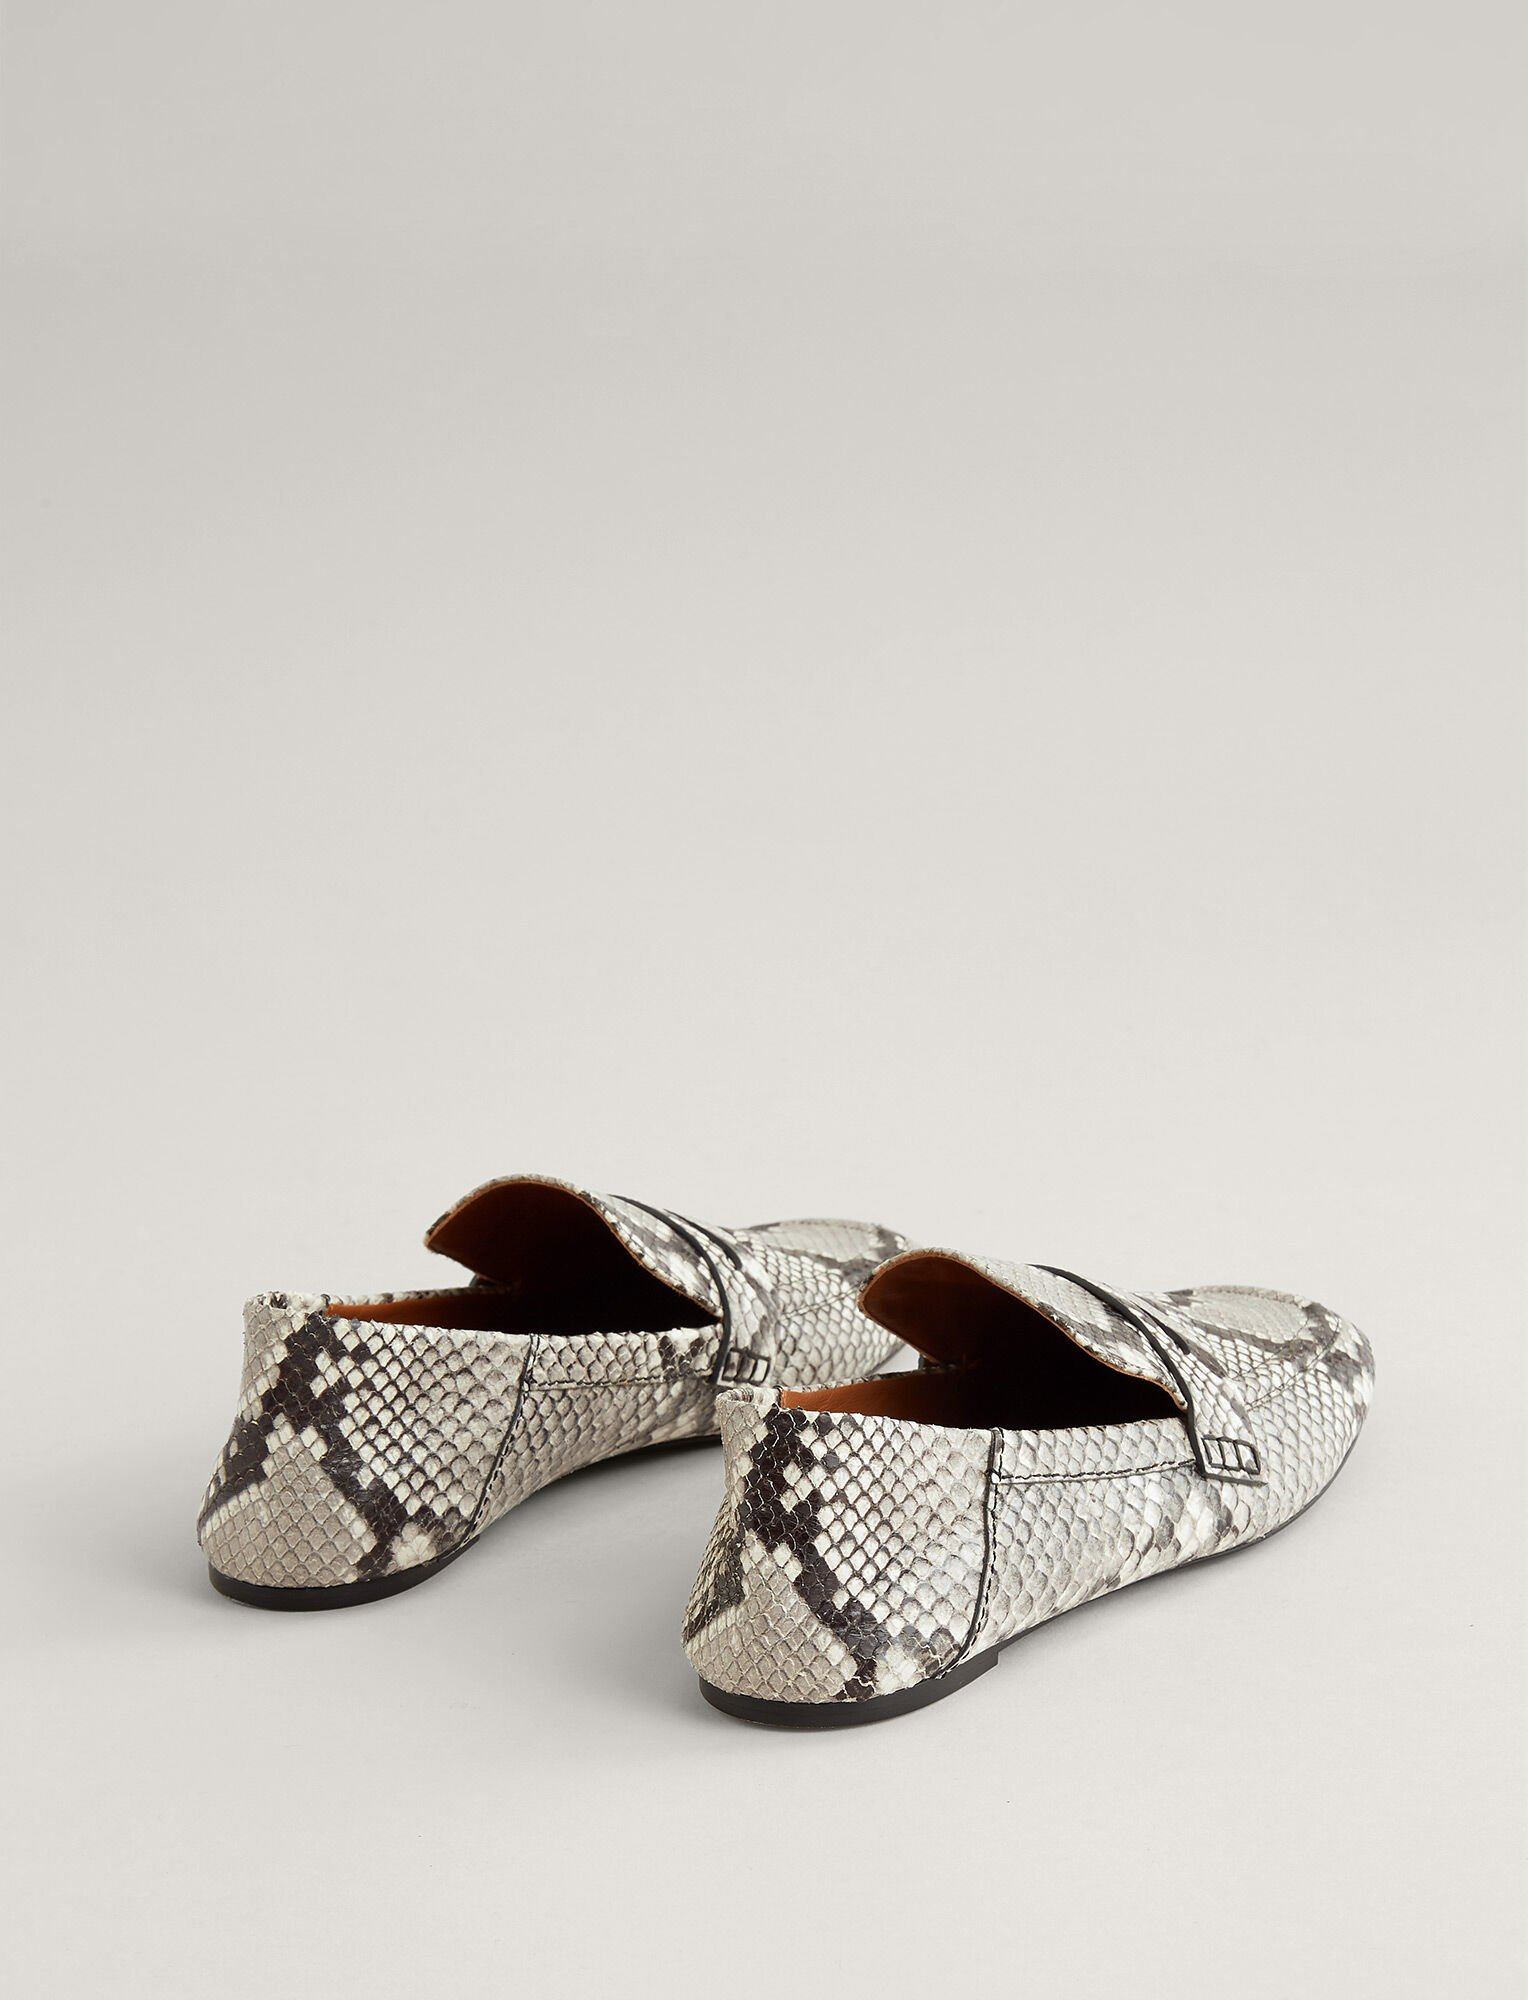 Joseph, Bakhta Leather Loafer, in WHITE/LIGHT GREY